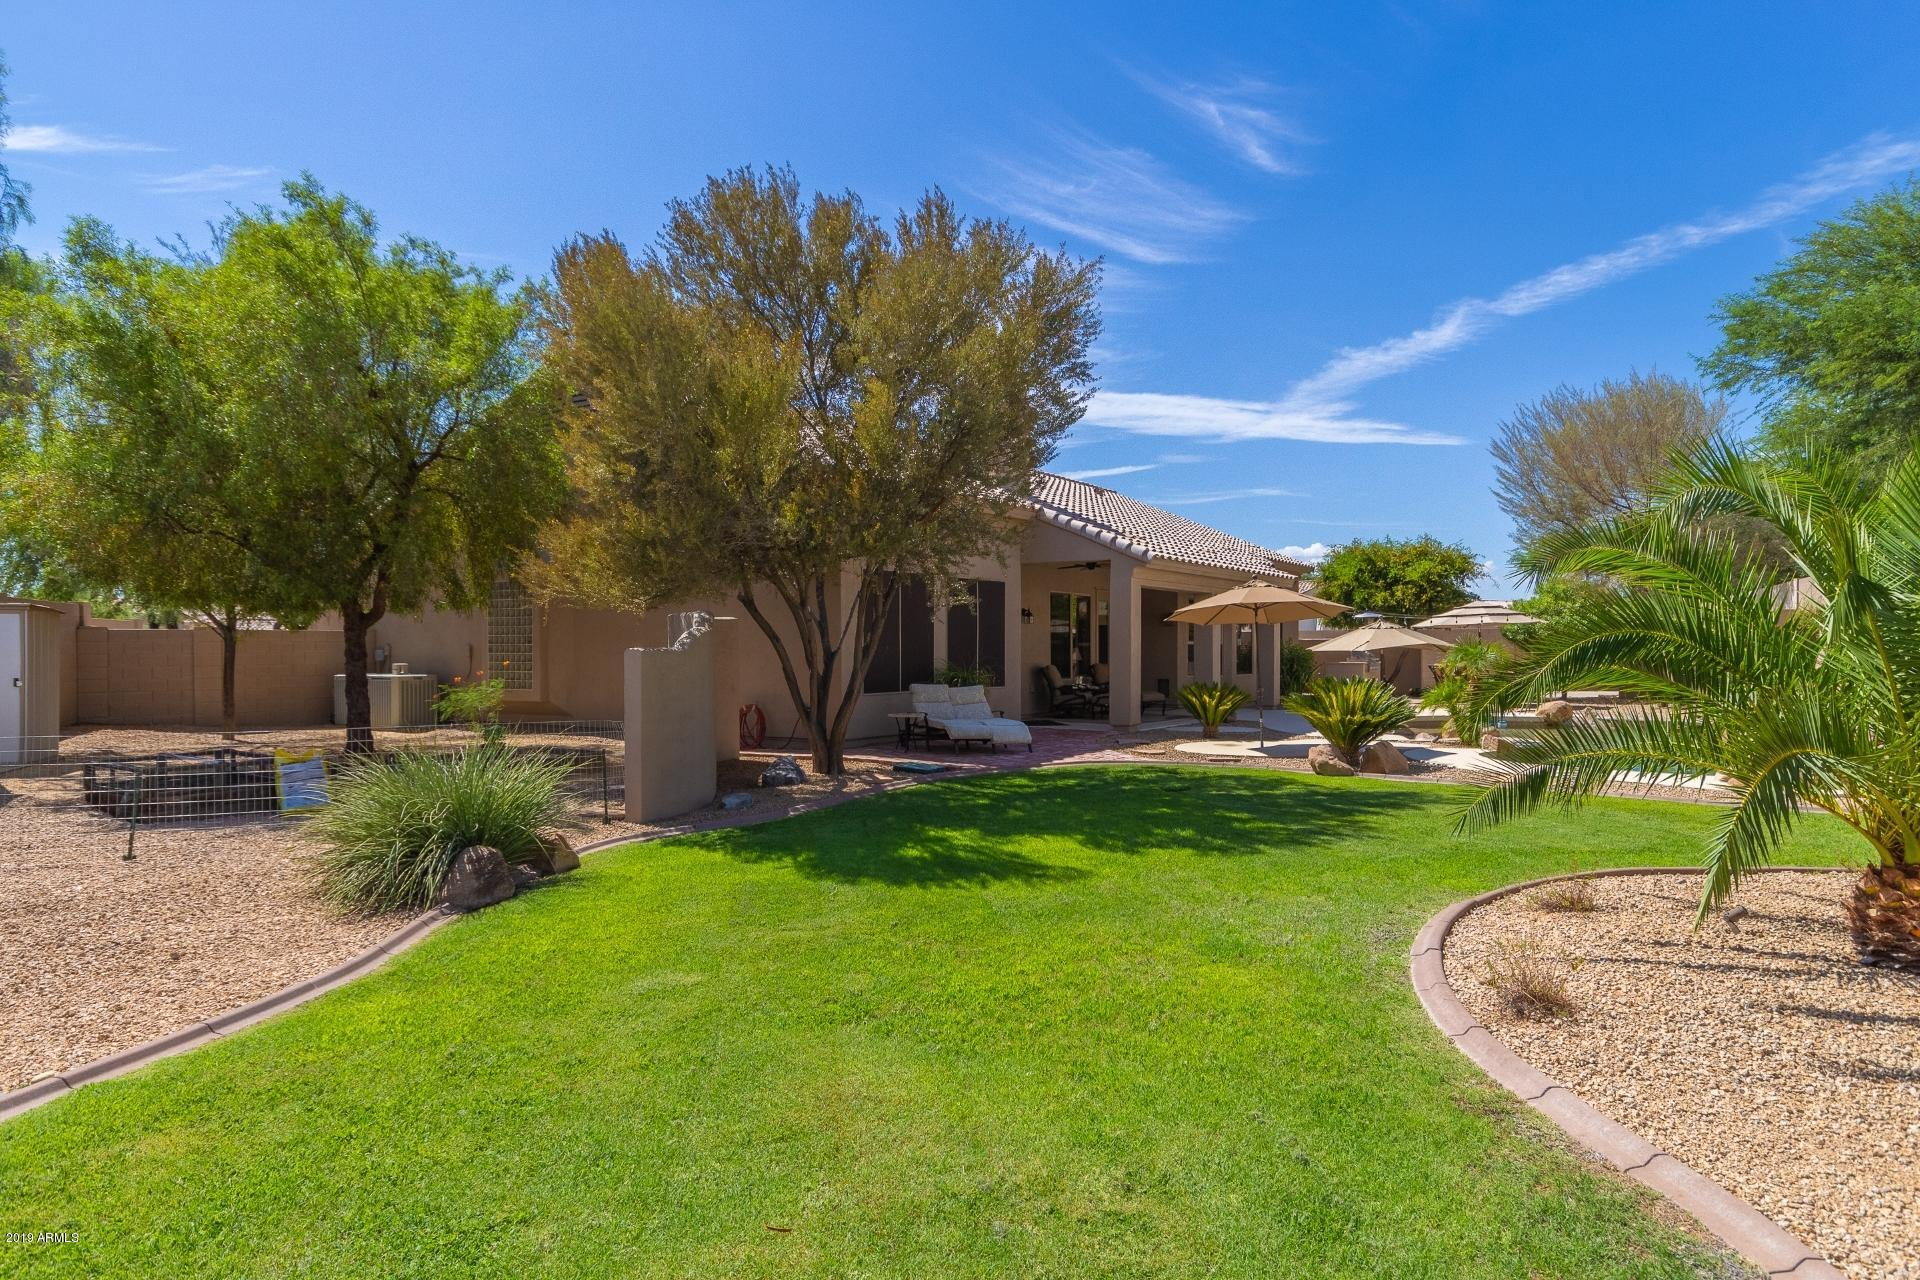 MLS 5963212 4903 E ROY ROGERS Road, Cave Creek, AZ 85331 Cave Creek AZ Tatum Ranch